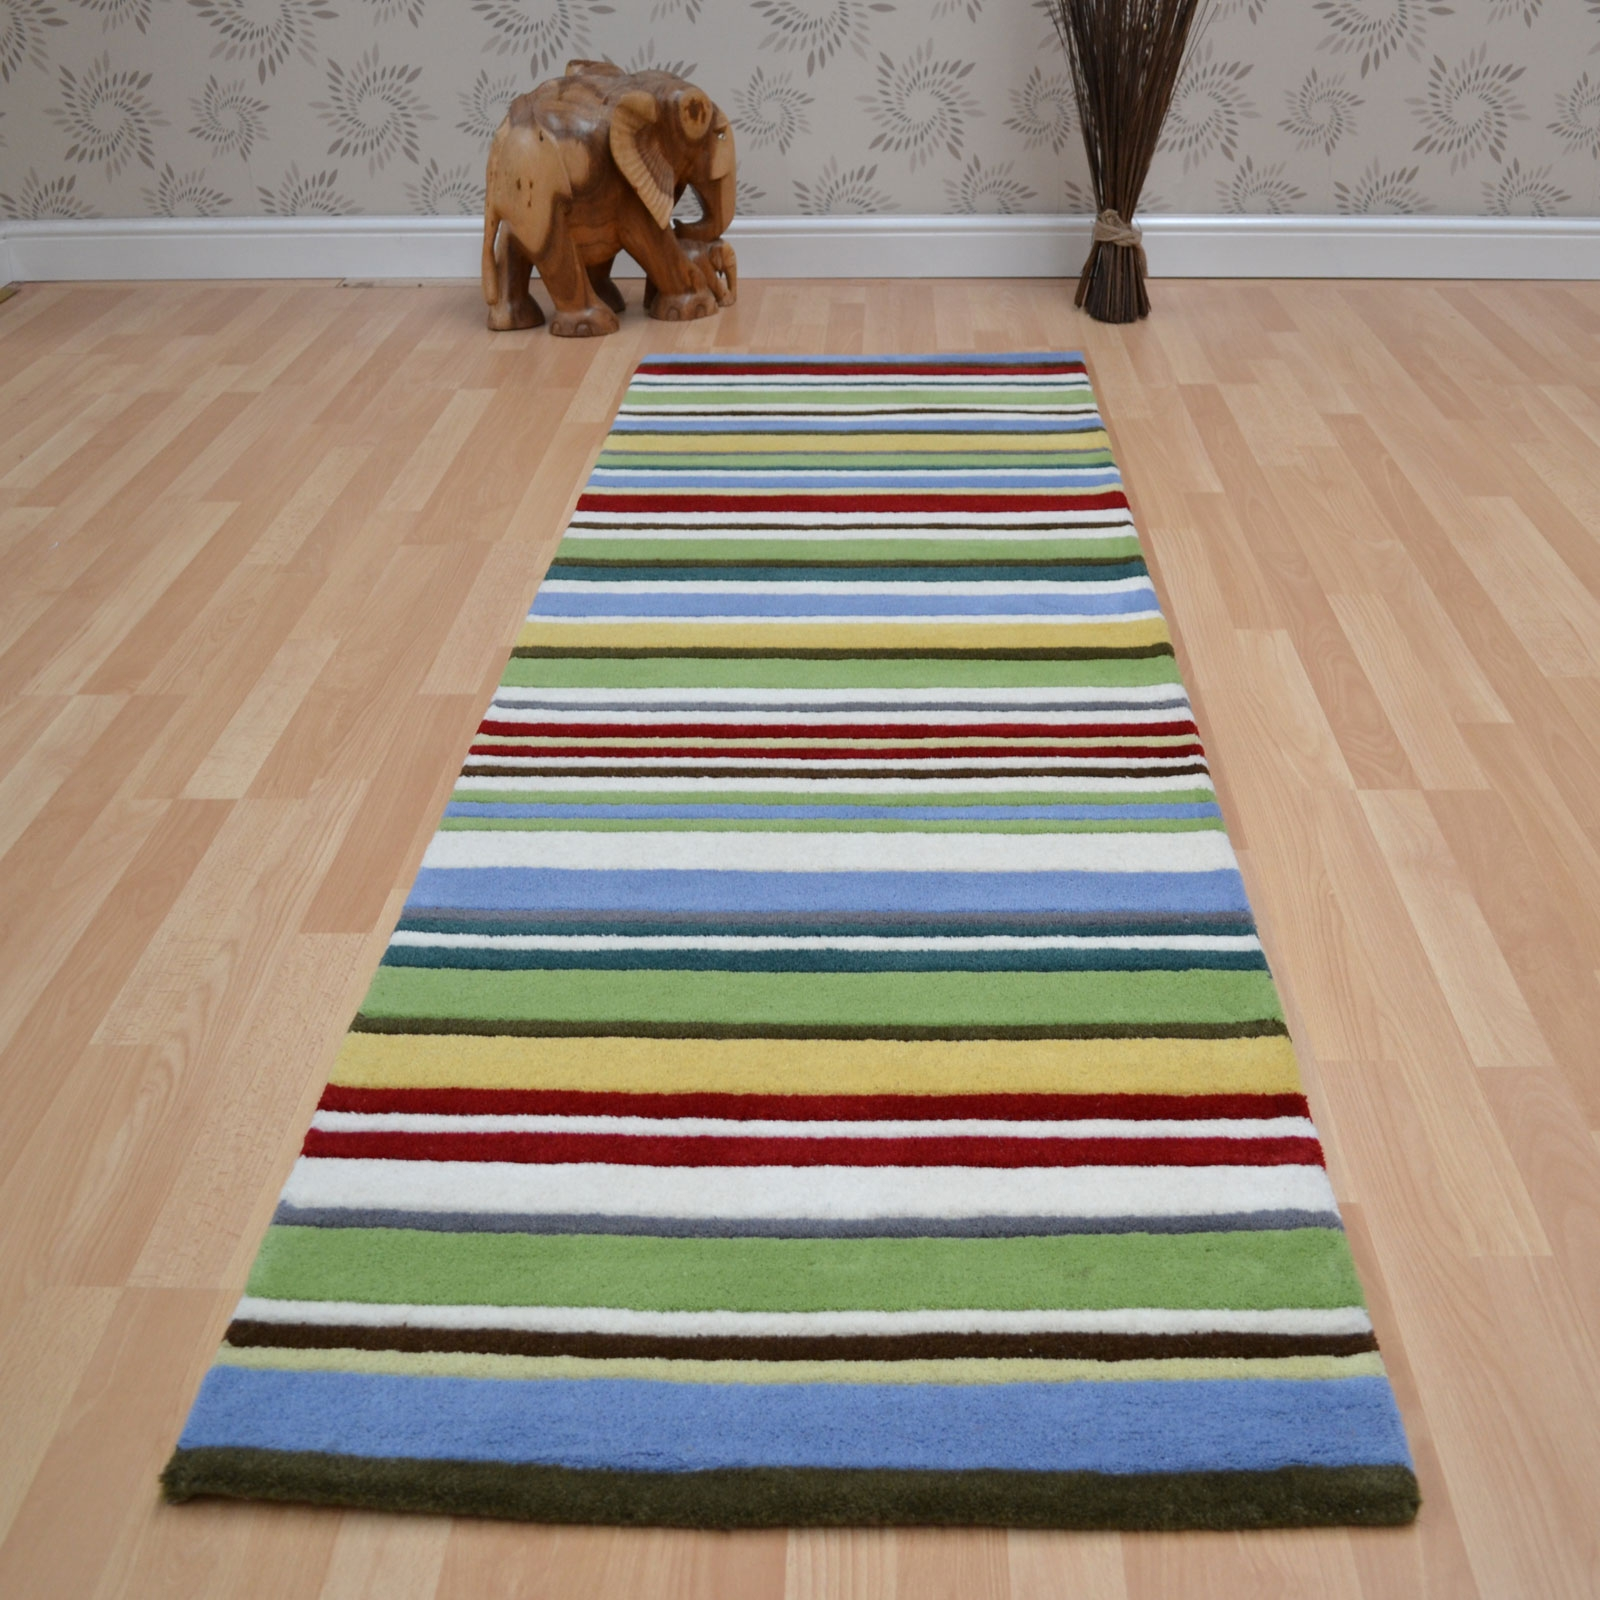 Hall Runner Rugs Uk Roselawnlutheran In Runner Rugs For Hallways (#14 of 20)